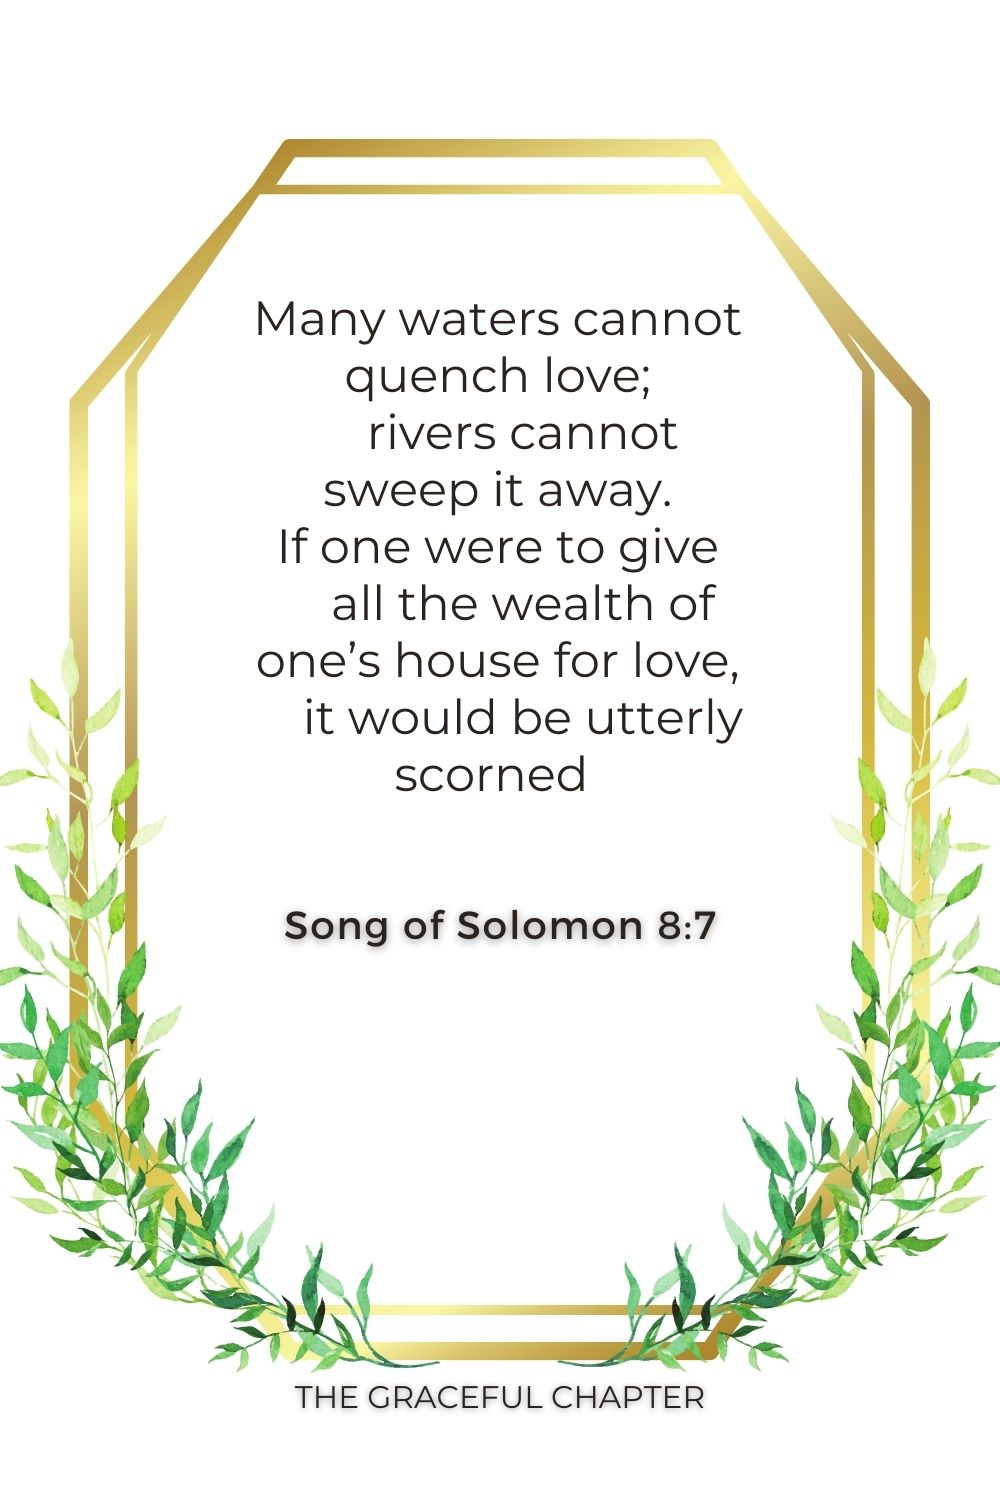 Many waters cannot quench love;     rivers cannot sweep it away. If one were to give     all the wealth of one's house for love,     it would be utterly scorned  Song of Solomon 8:7